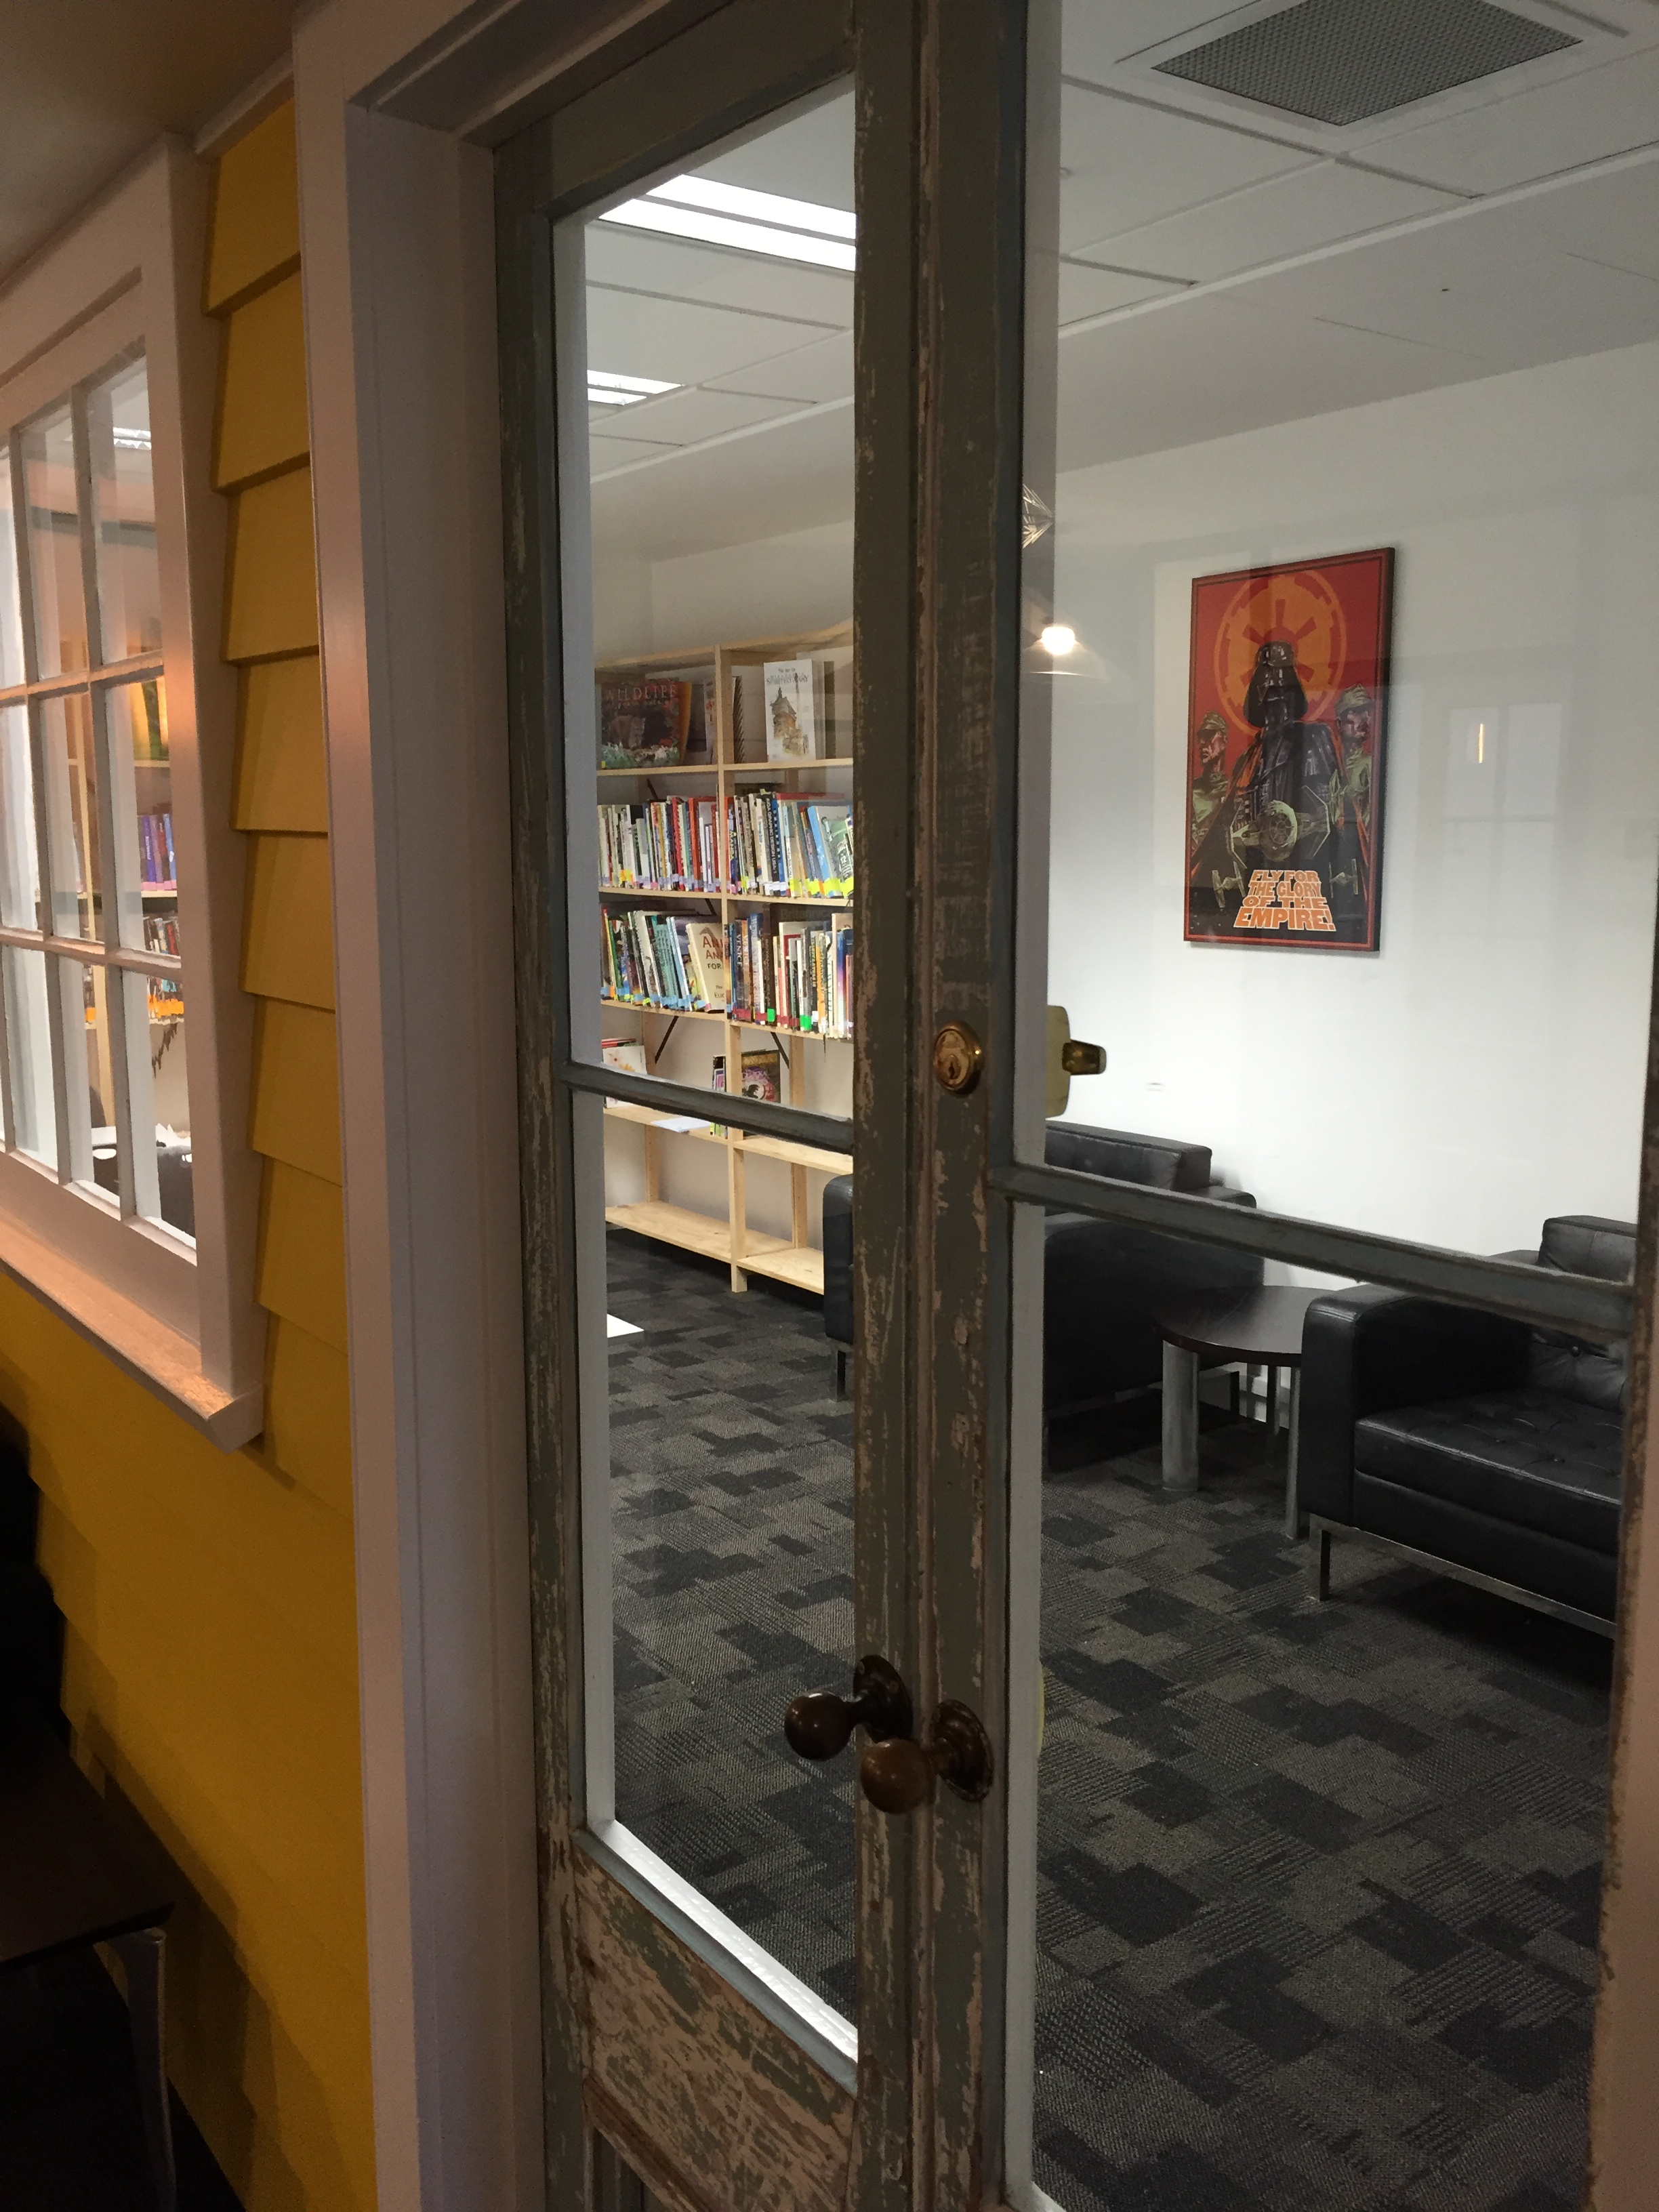 Looking into Animation College Library